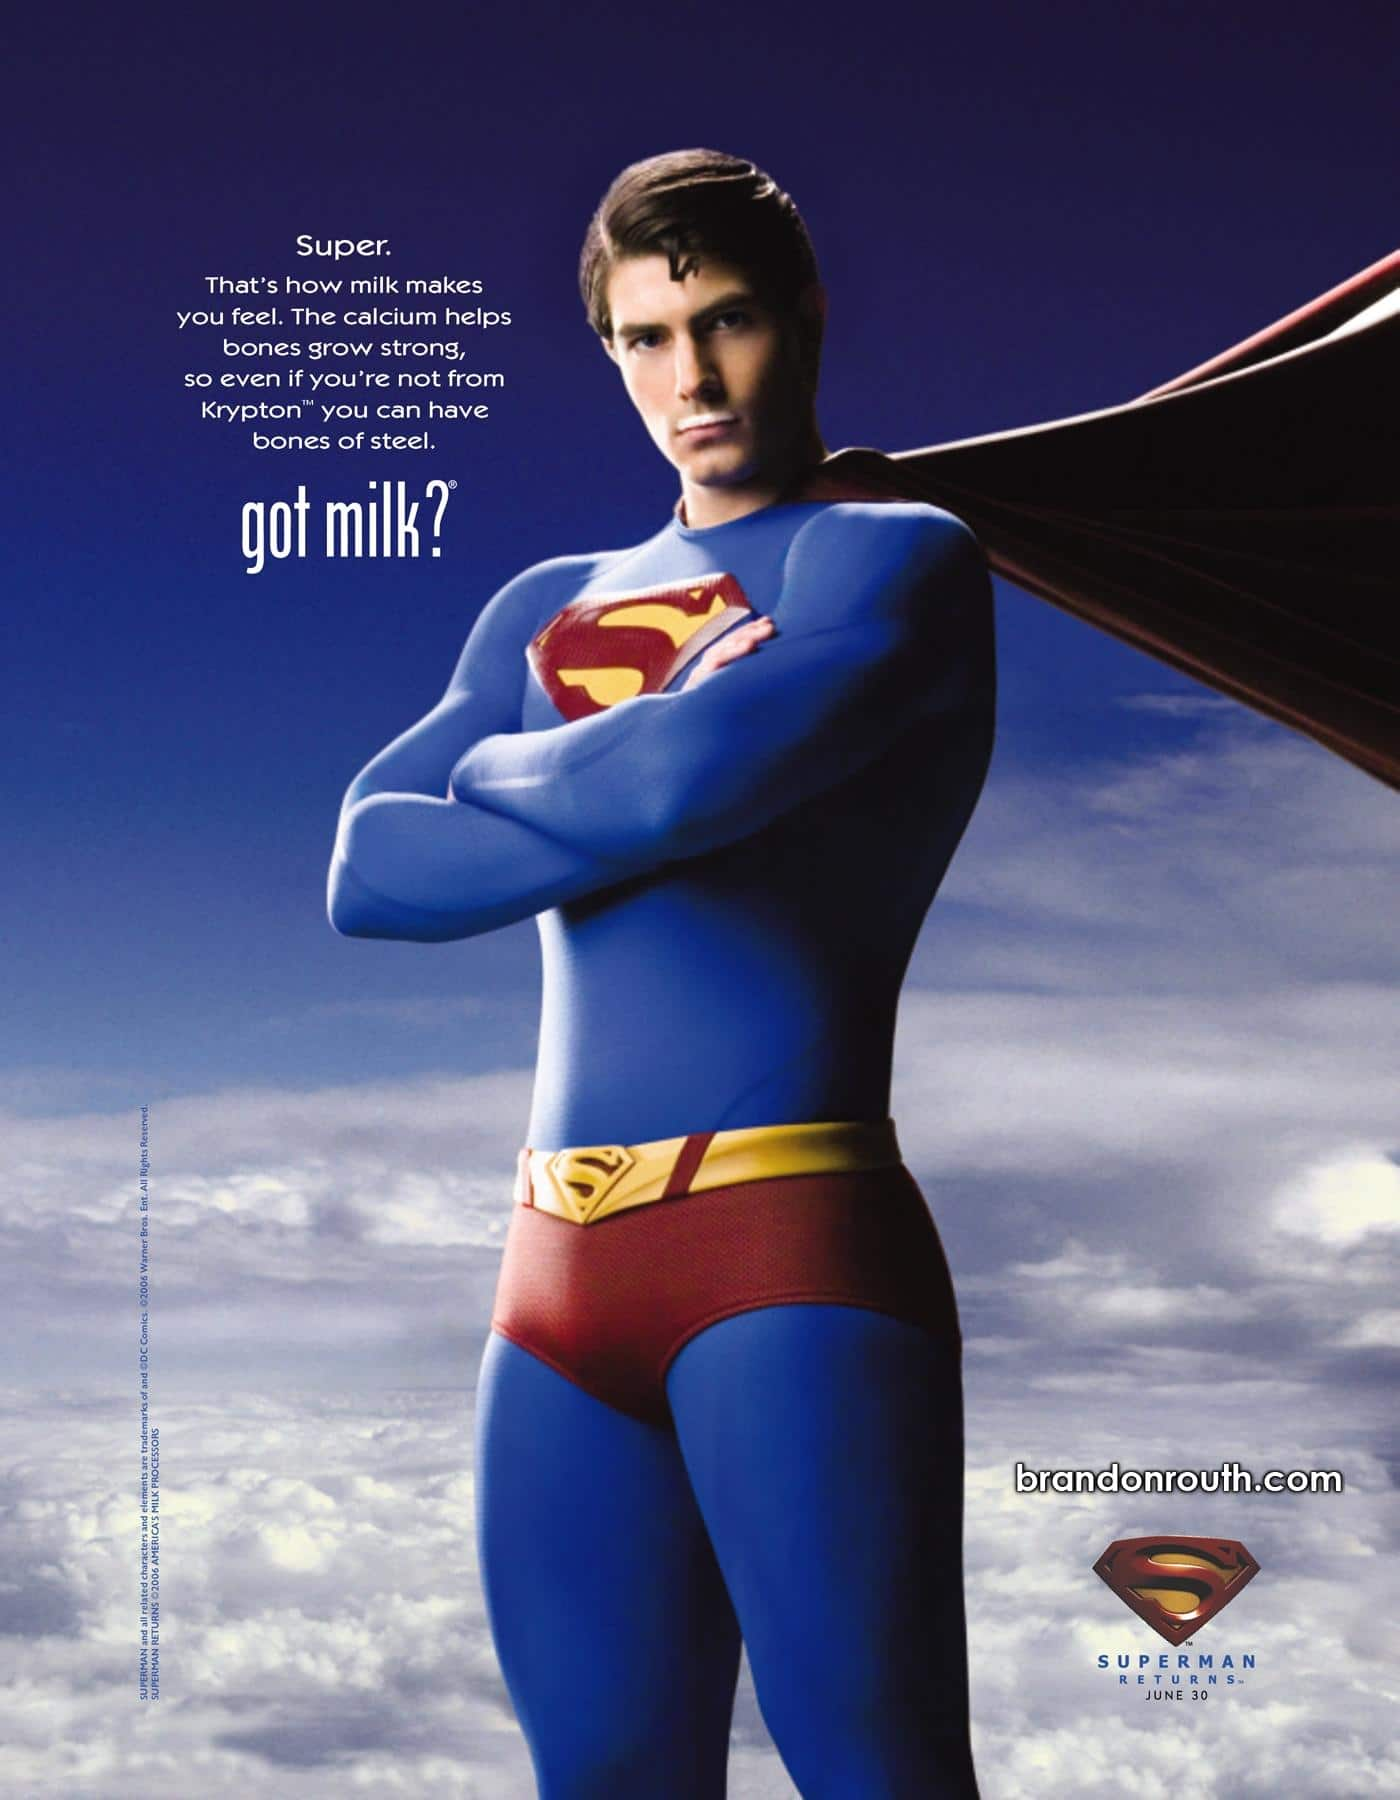 Got Milk marketing by Superman